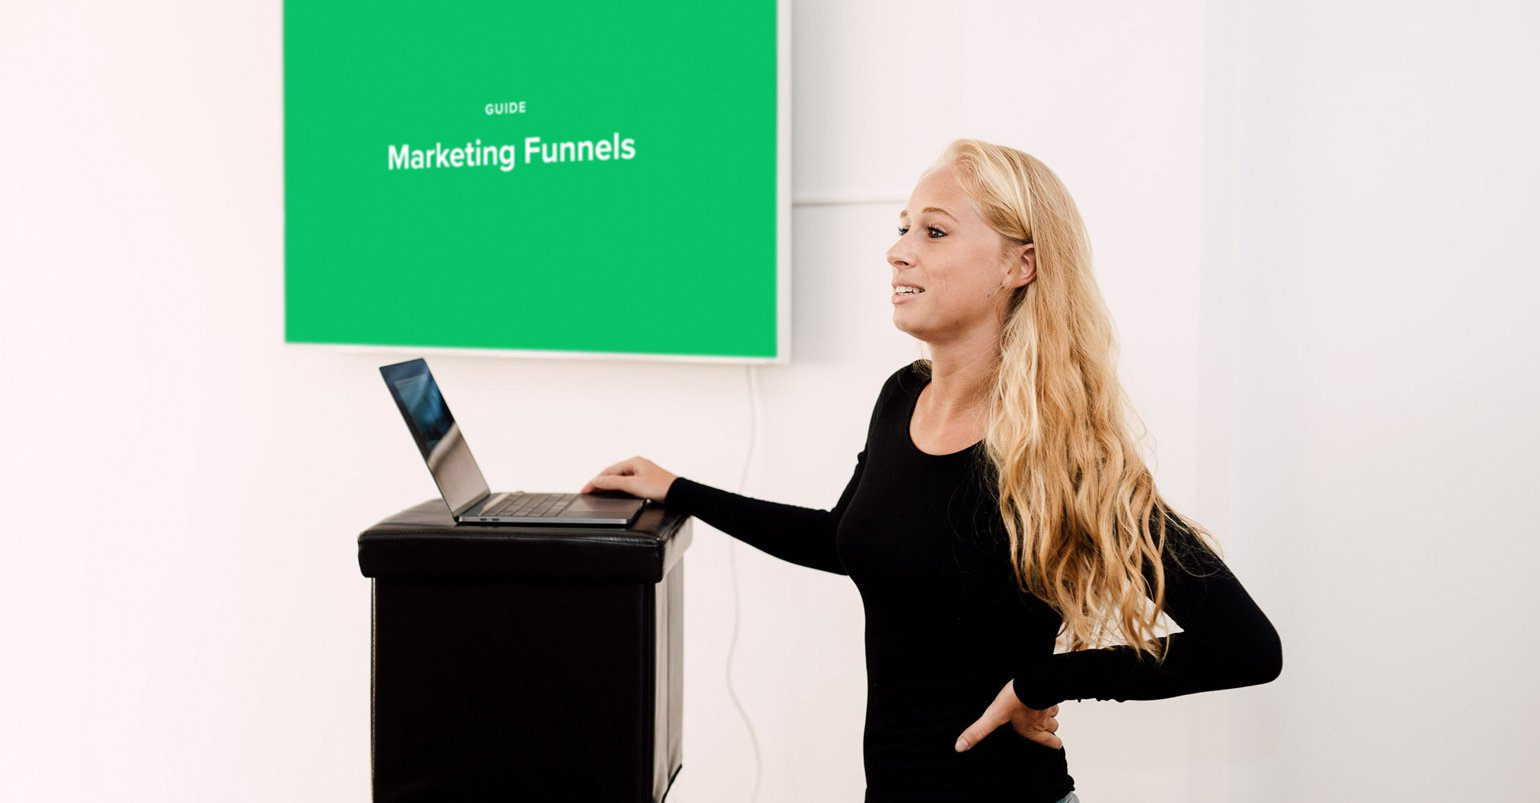 A guide to marketing funnels from an SEO perspective